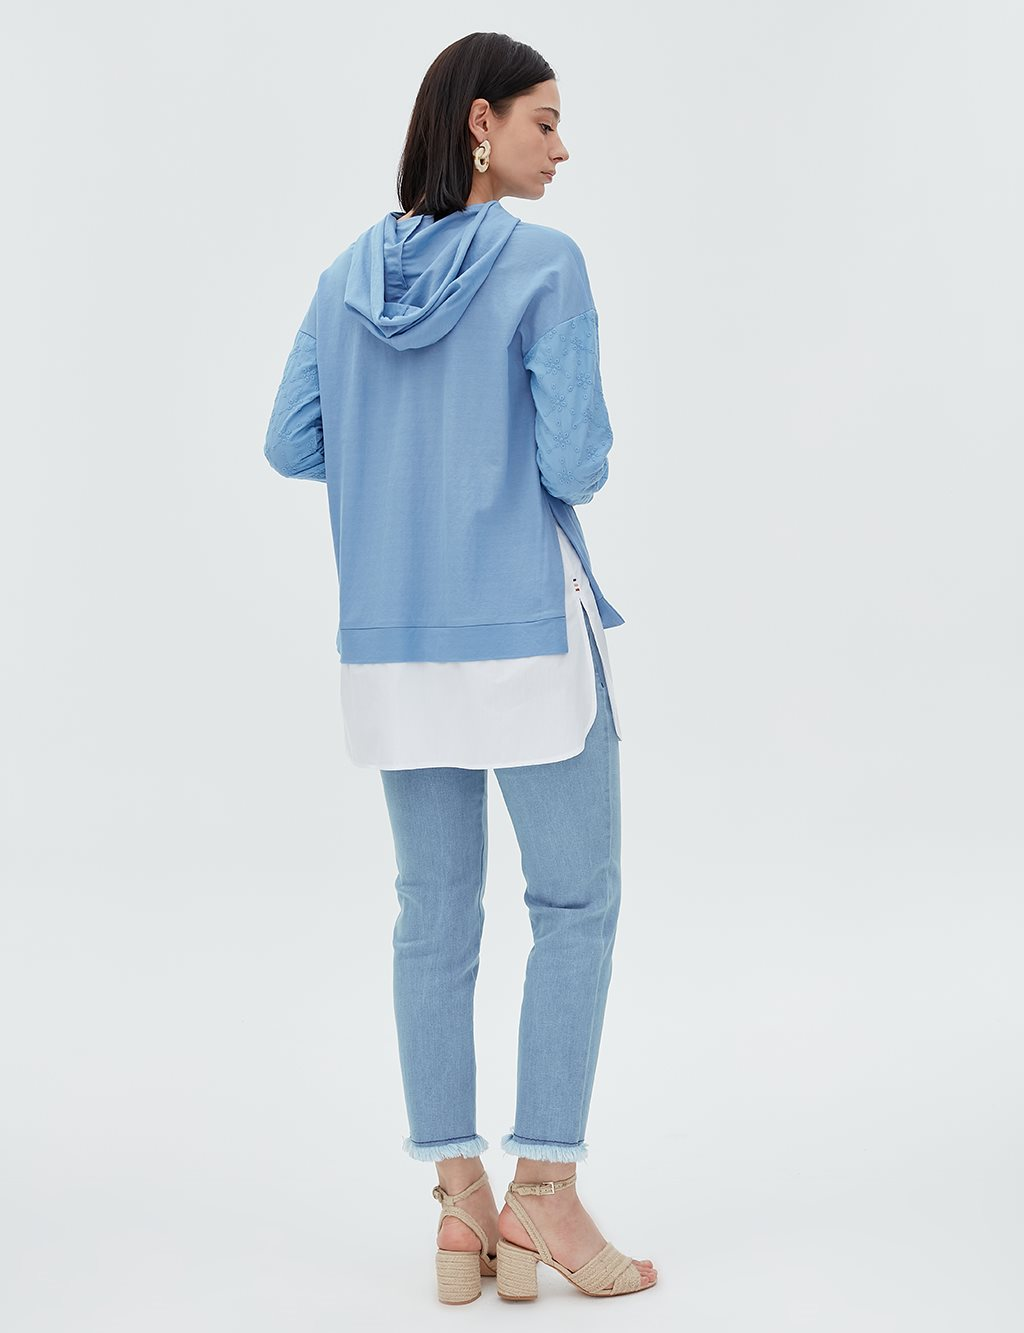 Embroidered Sweatshirt B20 21043 Blue